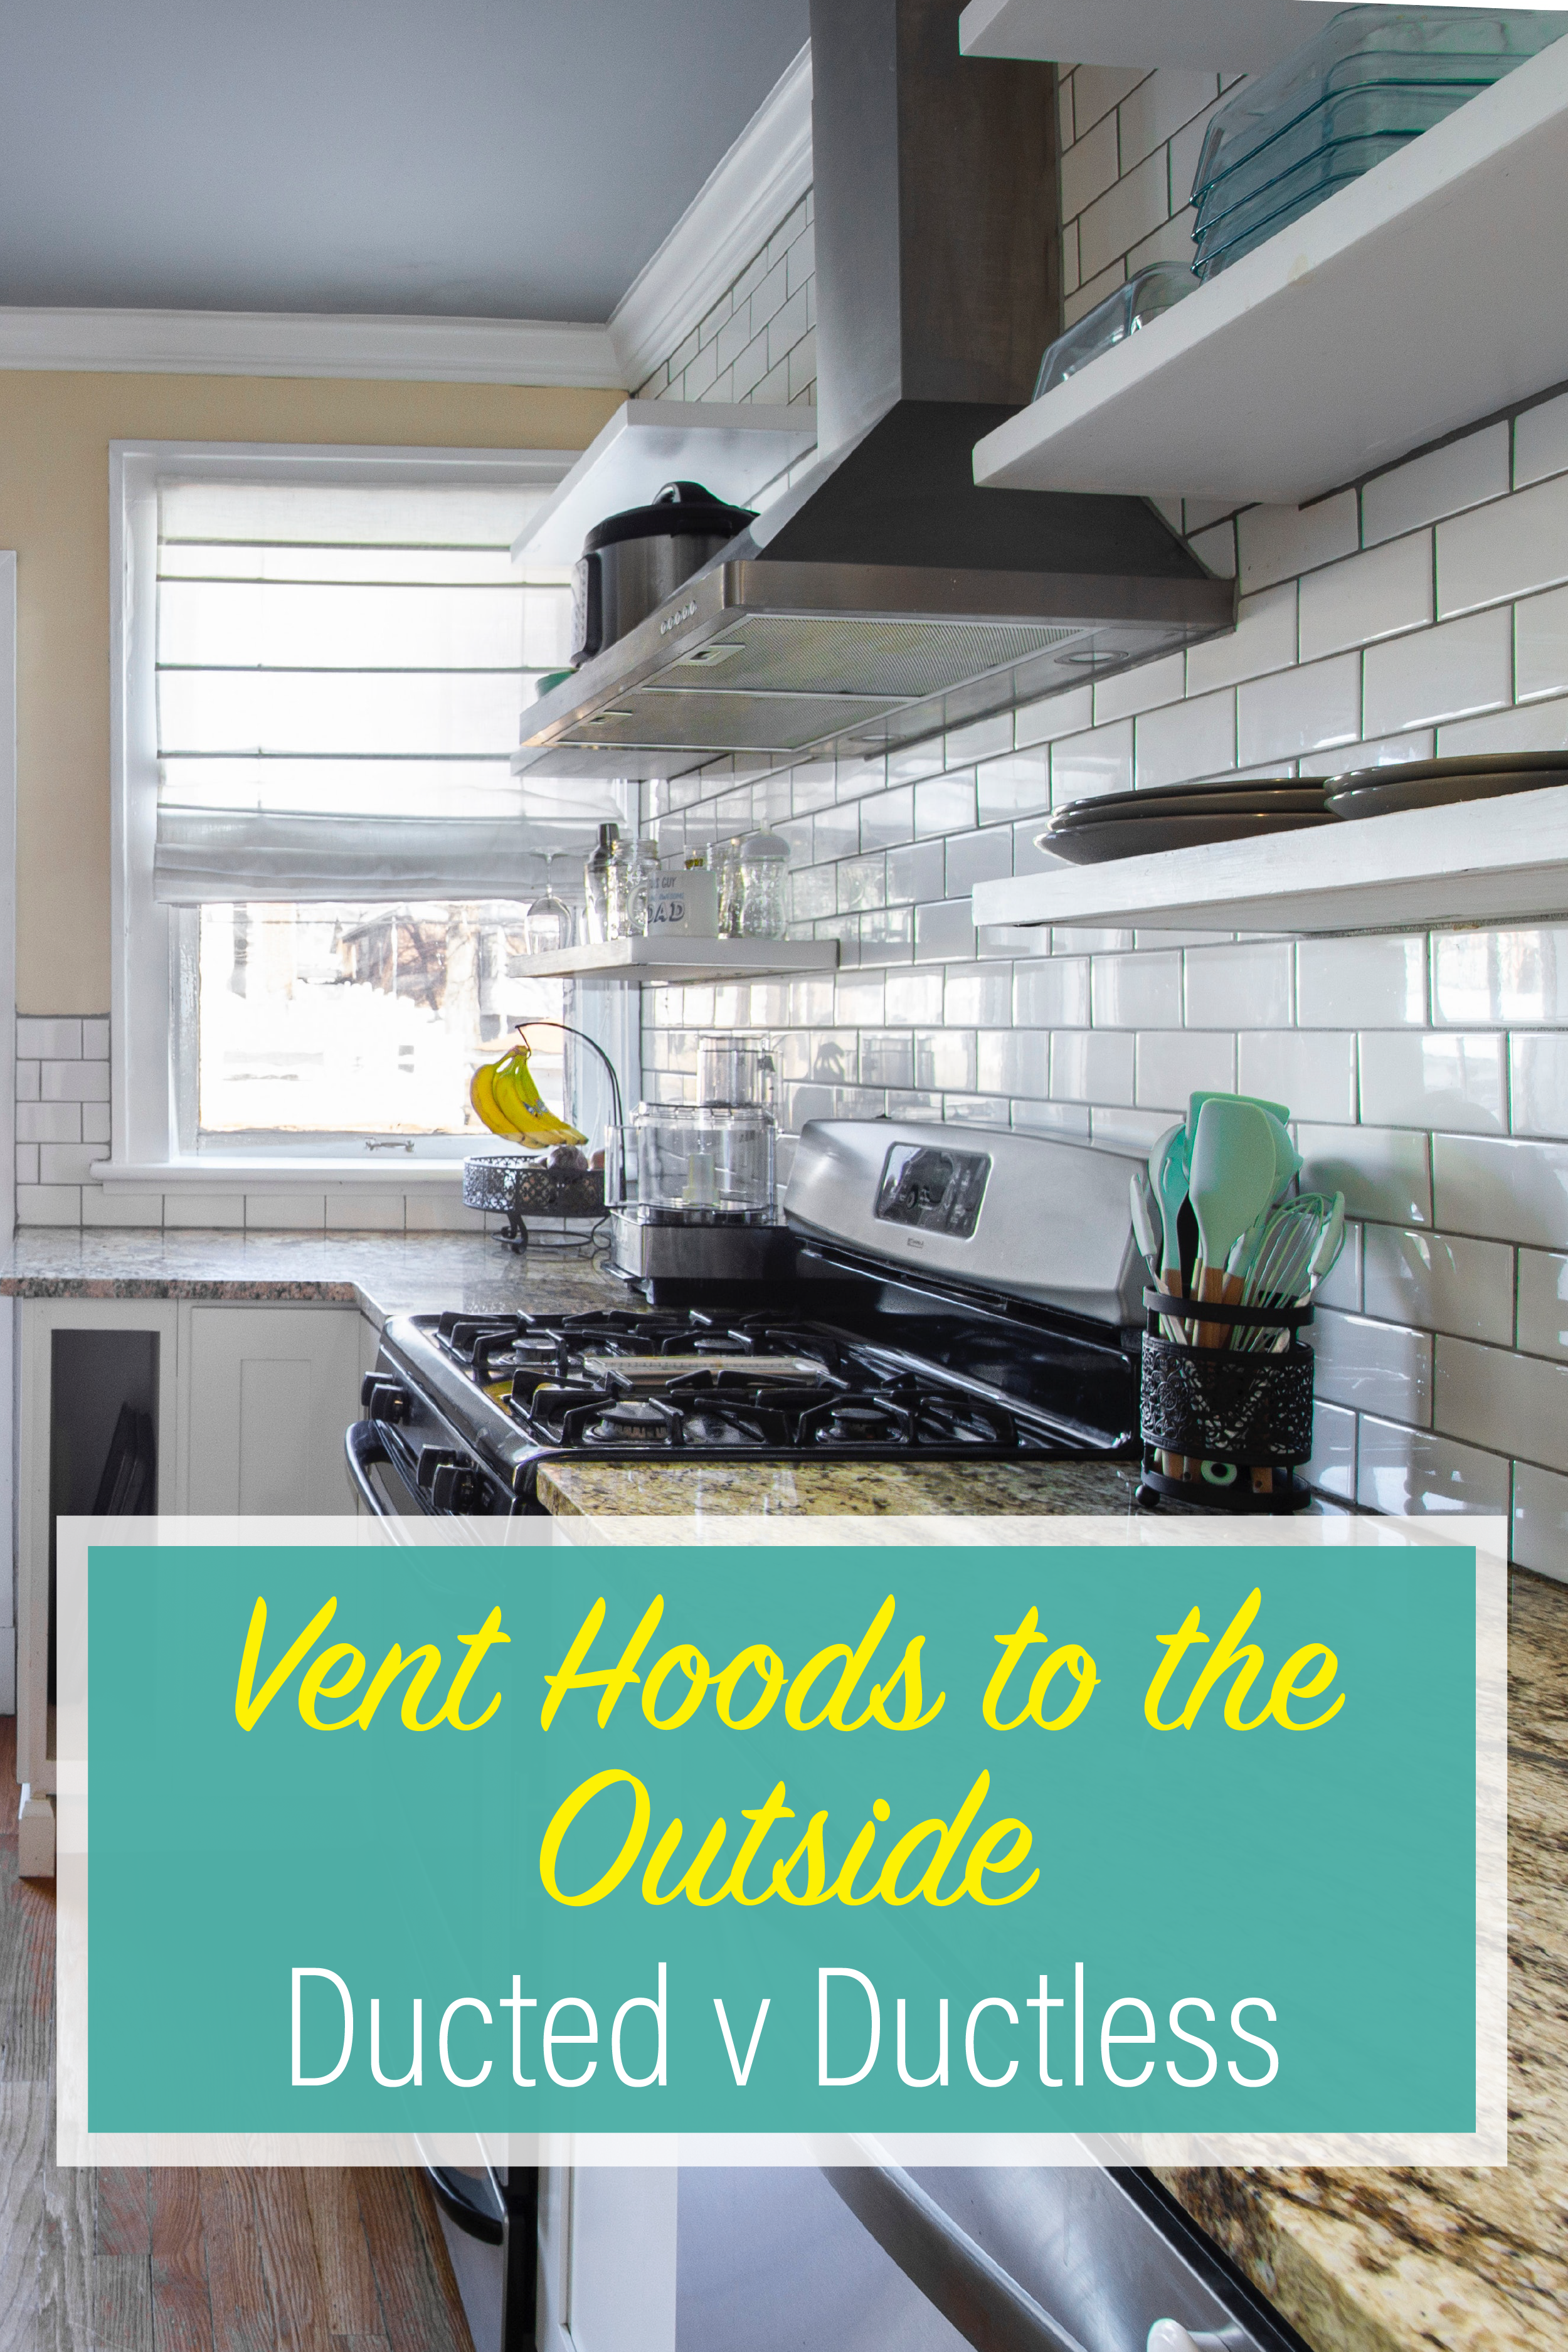 Ducted Range Hoods A Comprehensive Guide With Pros And Cons Kitchen Vent Hood Ducted Range Hood Vent Hood